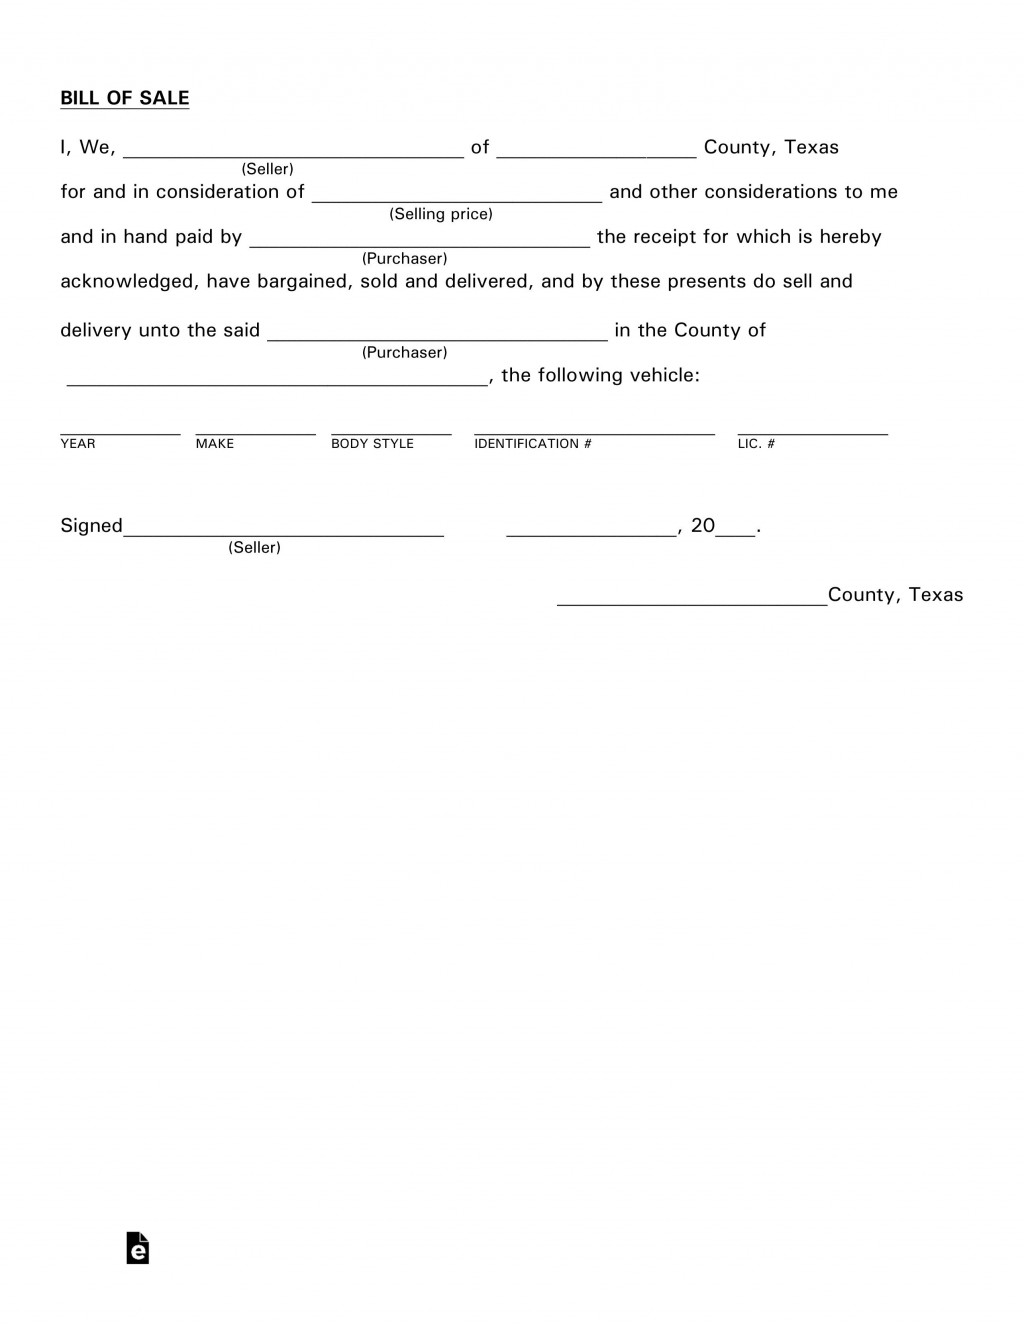 005 Marvelou Bill Of Sale Texa Template Photo  Motor Vehicle Form Free PrintableLarge